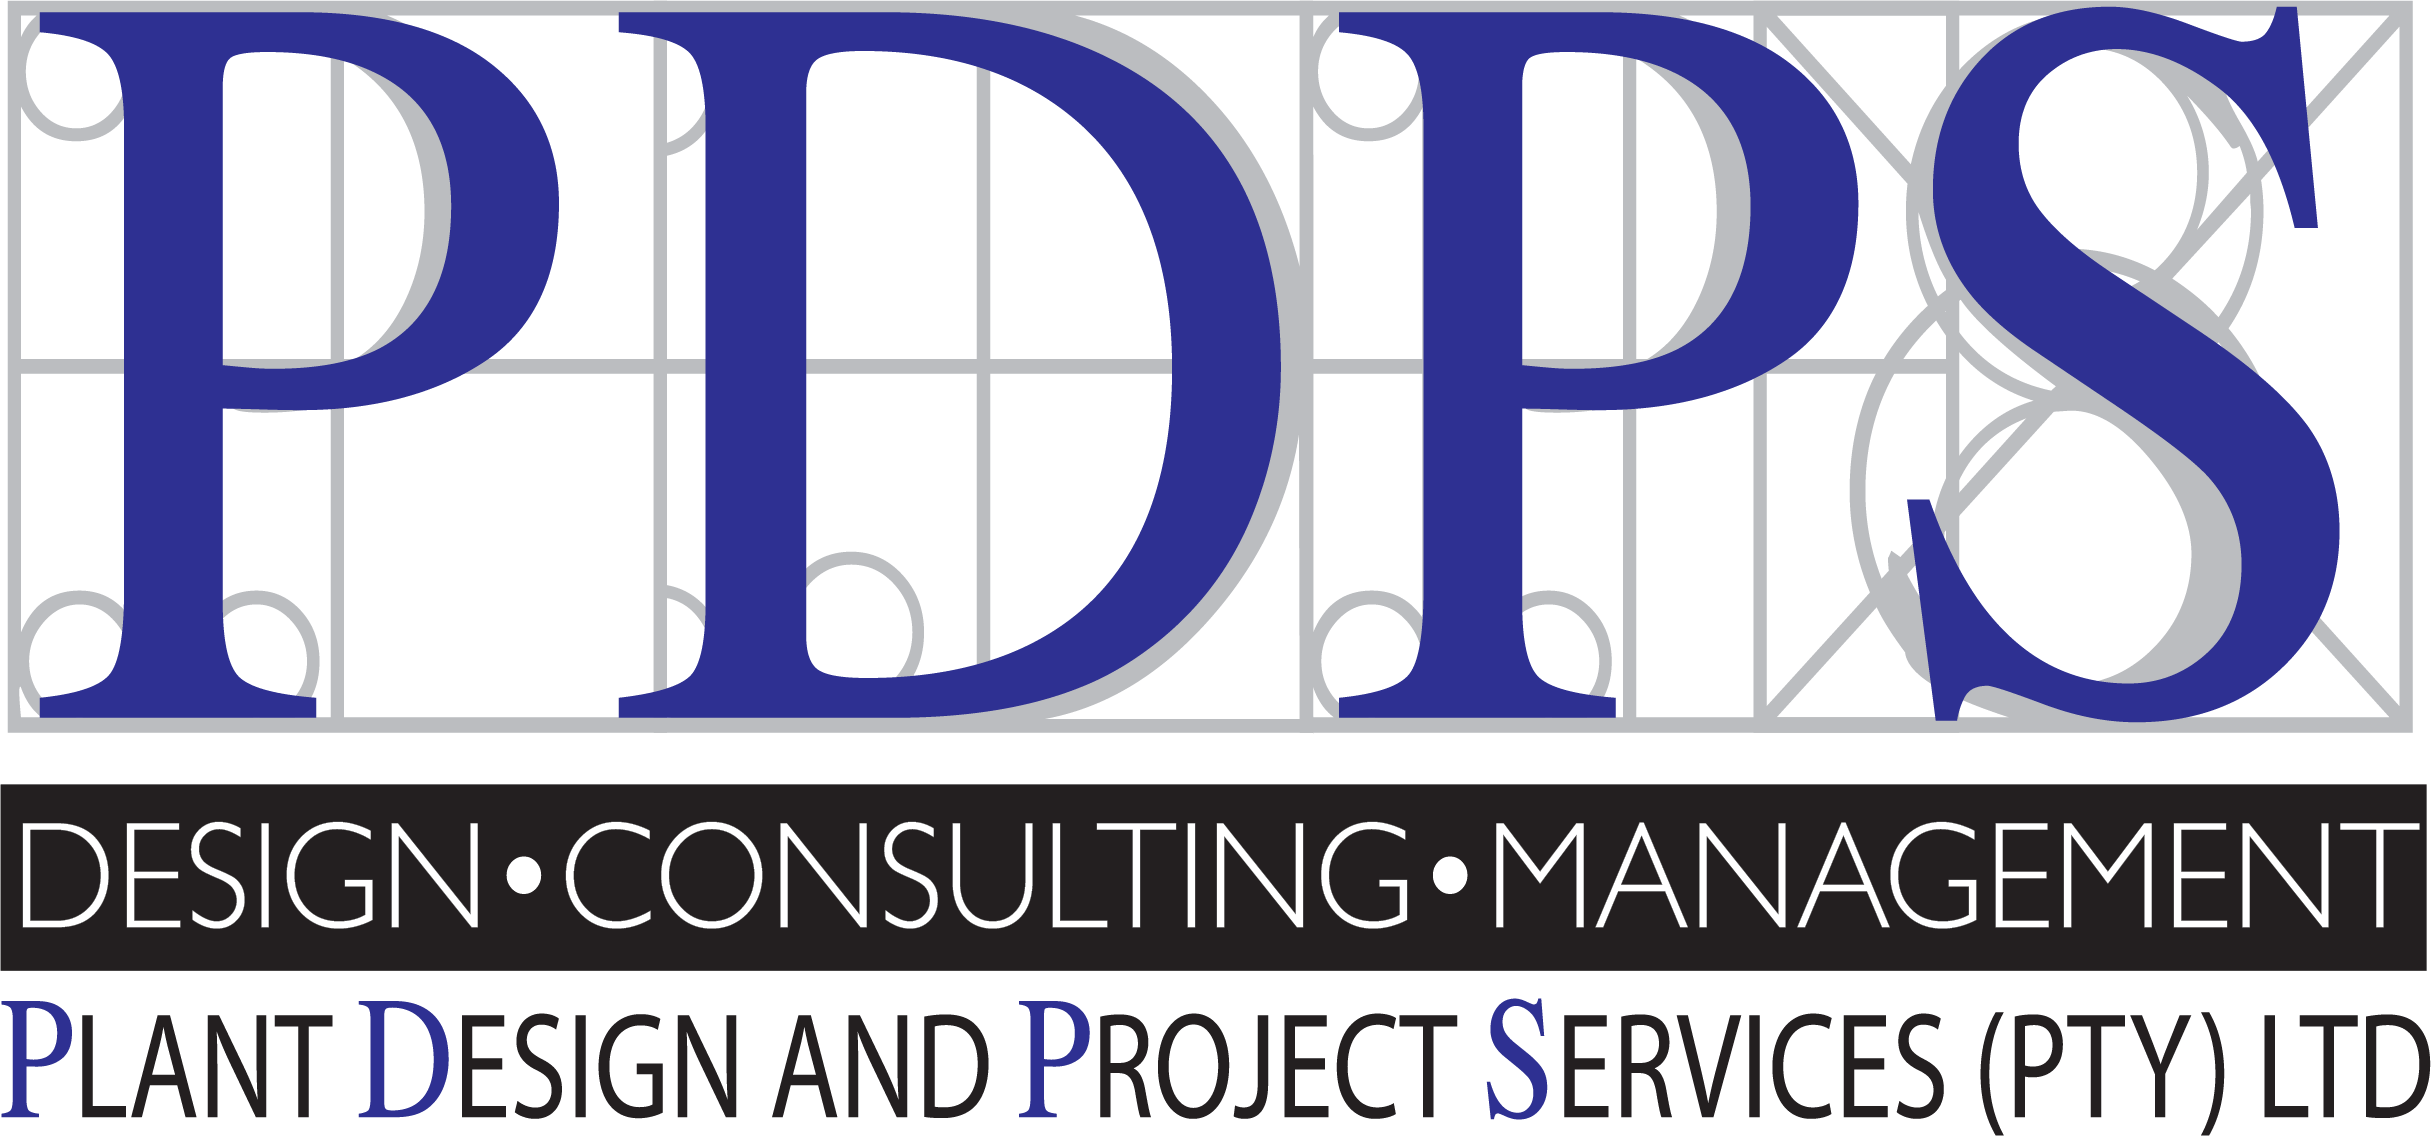 Plant Design and Project Services